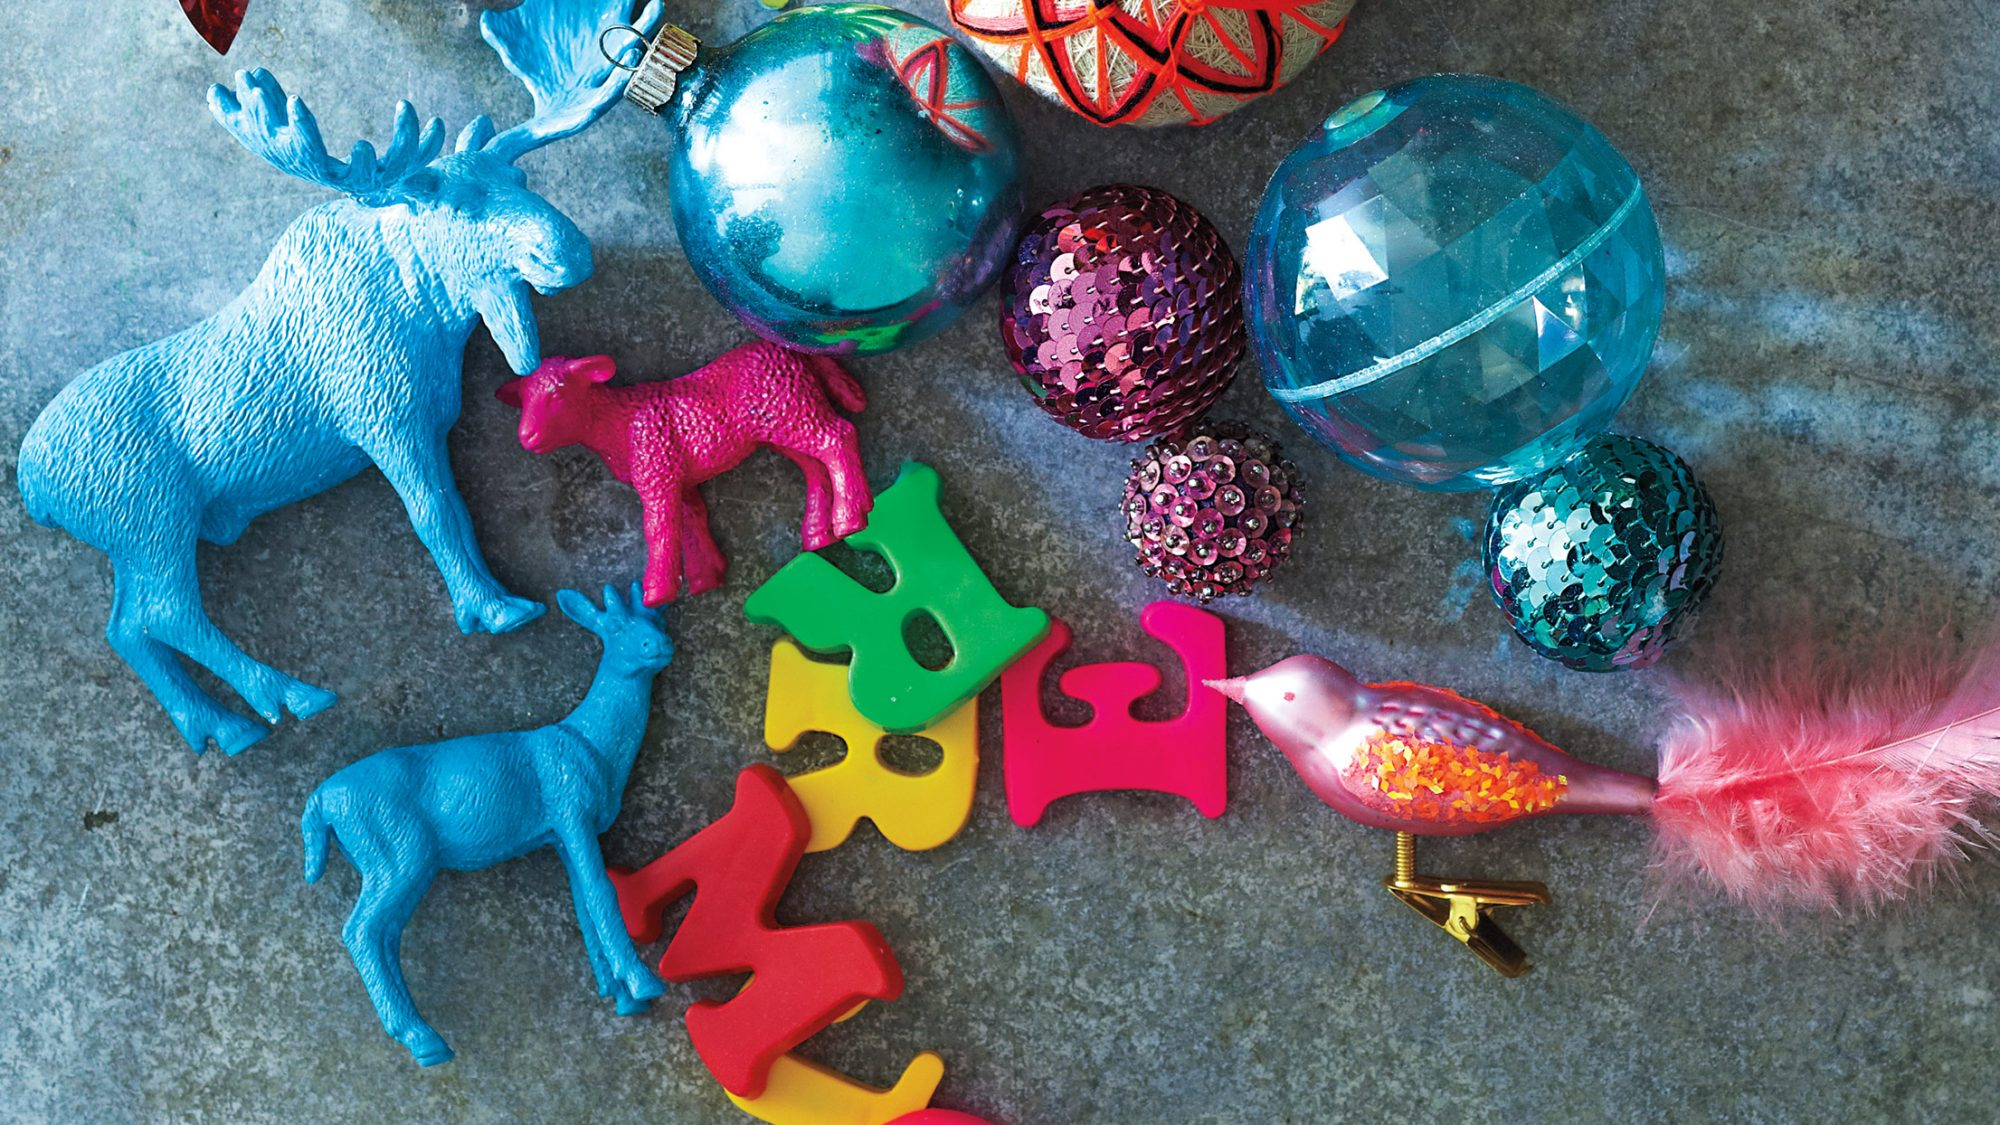 colorful kids toys and ornaments